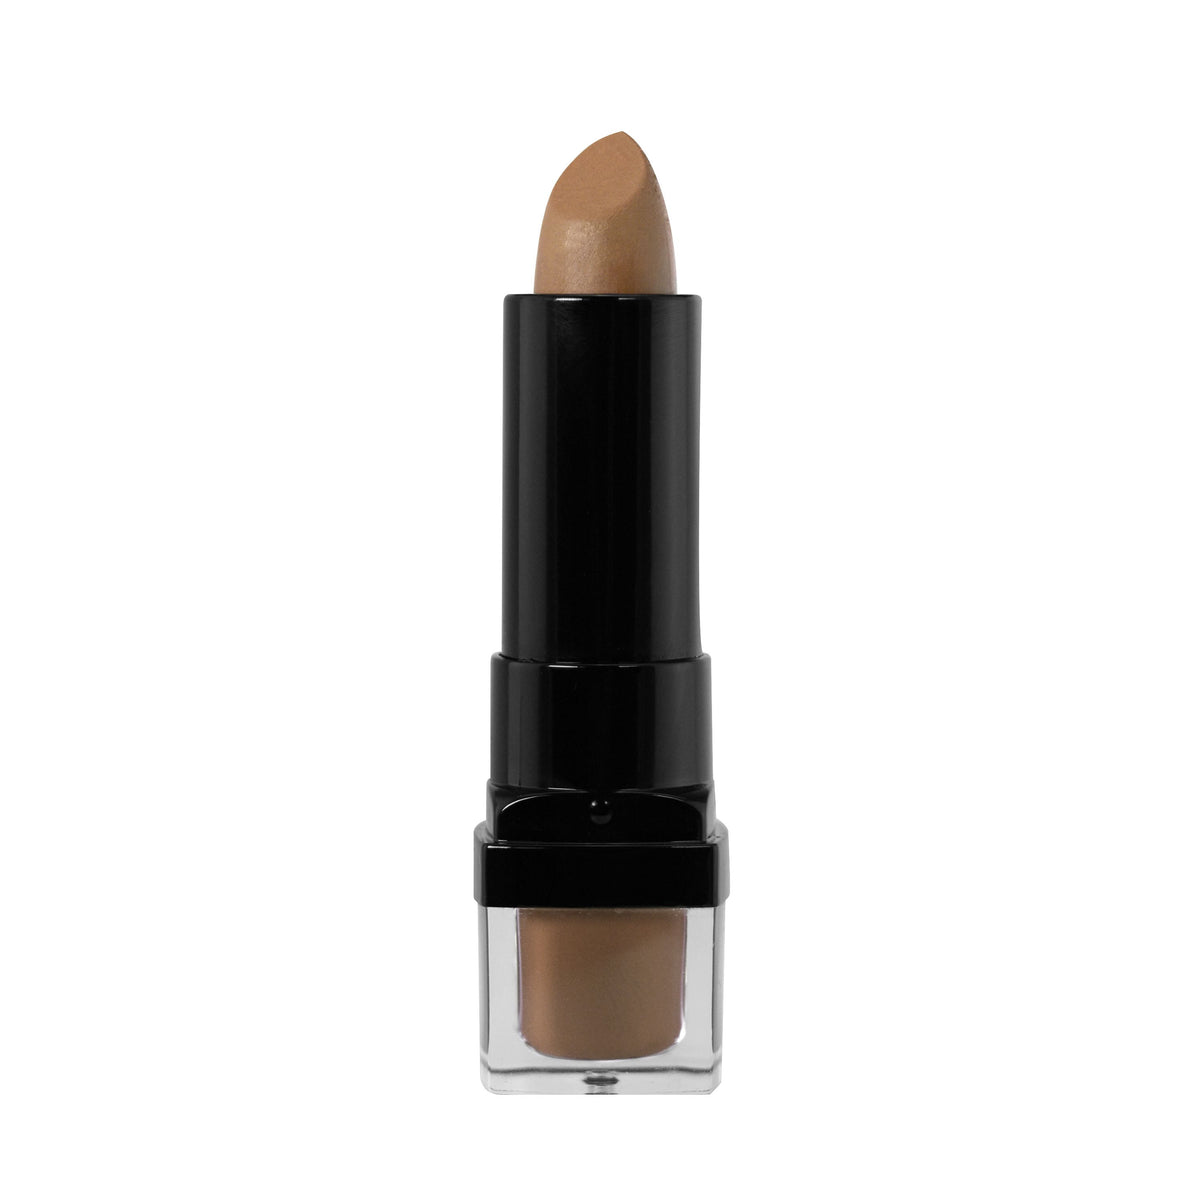 MD Muse Matte Lipstick - Natural